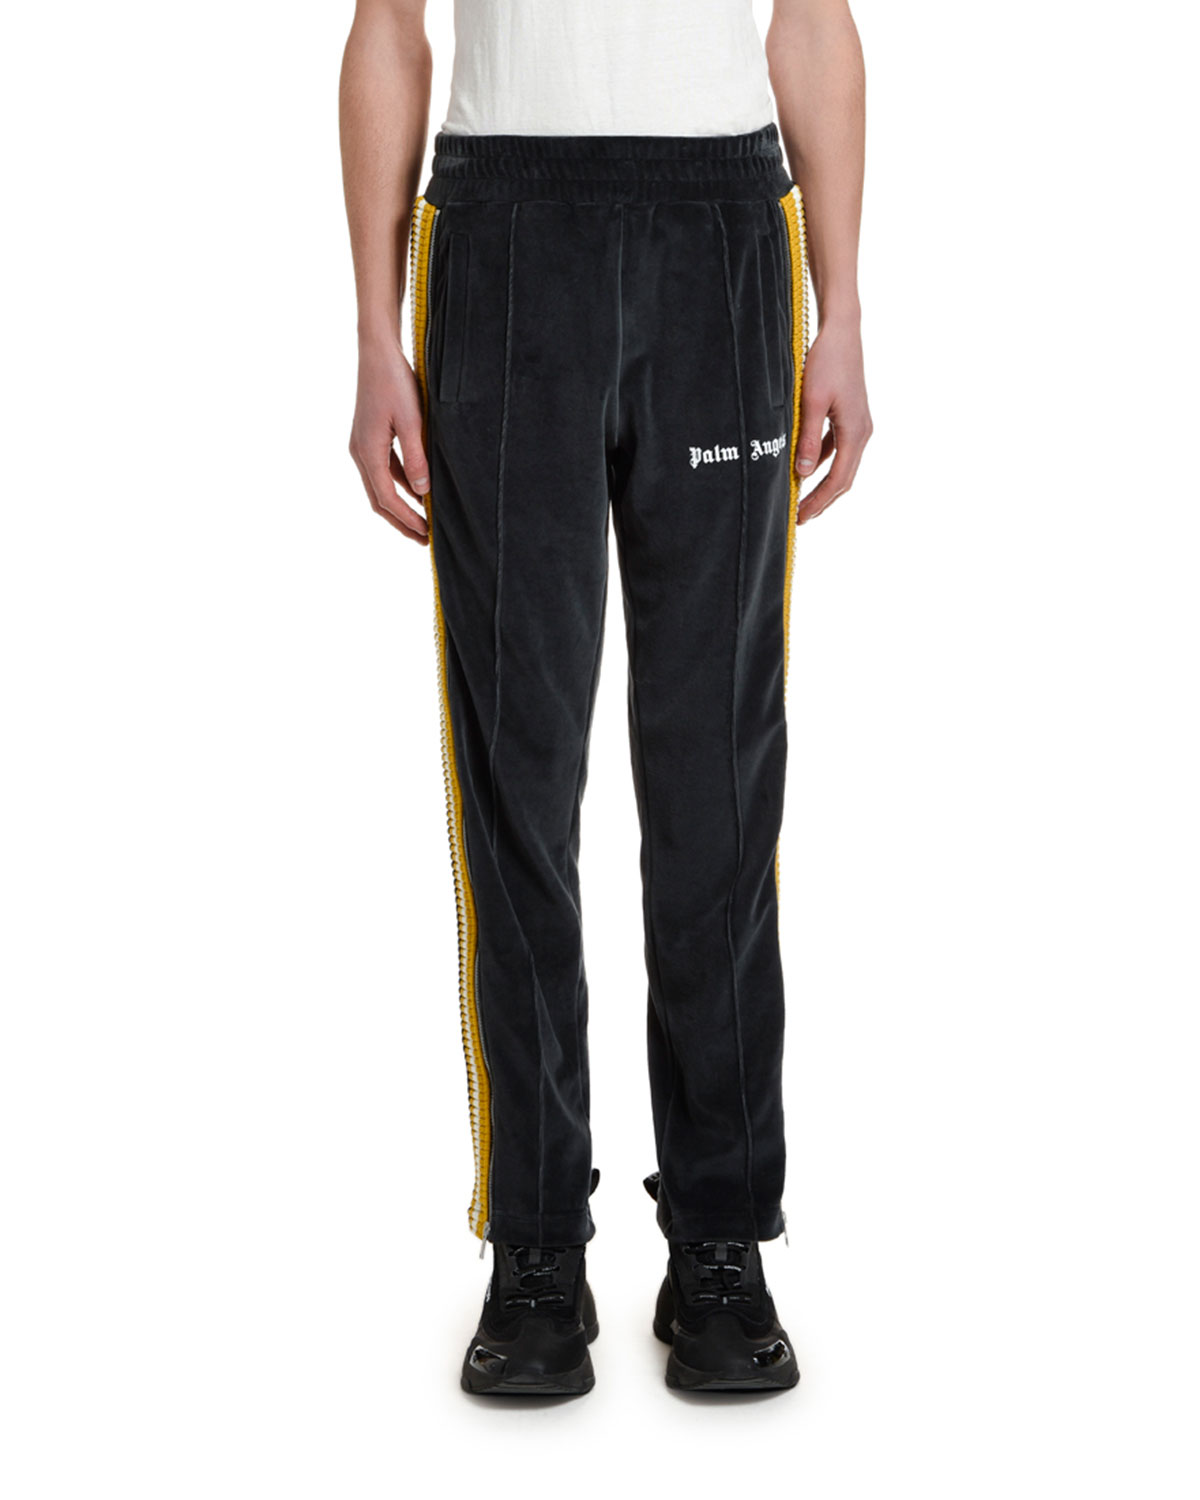 Palm Angels Pants MEN'S CHENILLE TRACK PANTS WITH SIDE STRIPES